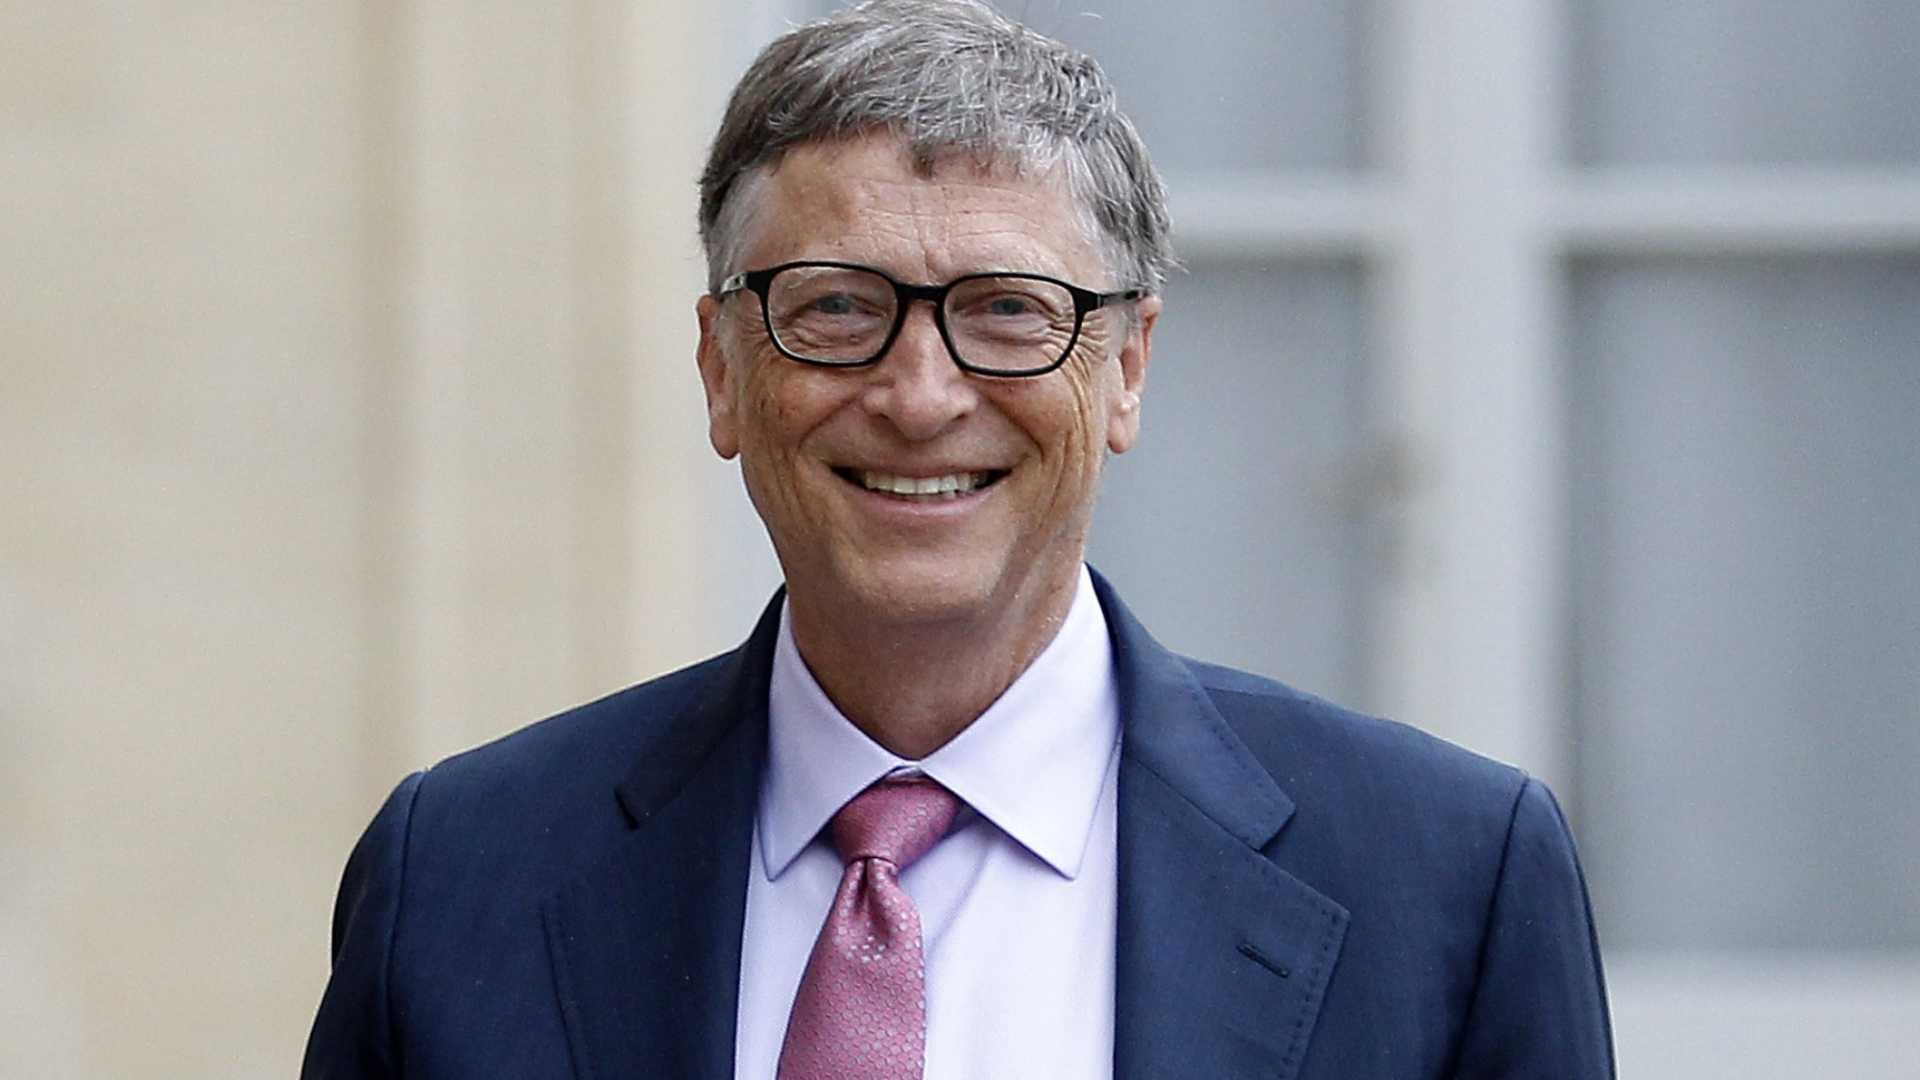 Bill Gates: High Schoolers Should Cultivate 1 Skill to Thrive in 2030 and Beyond